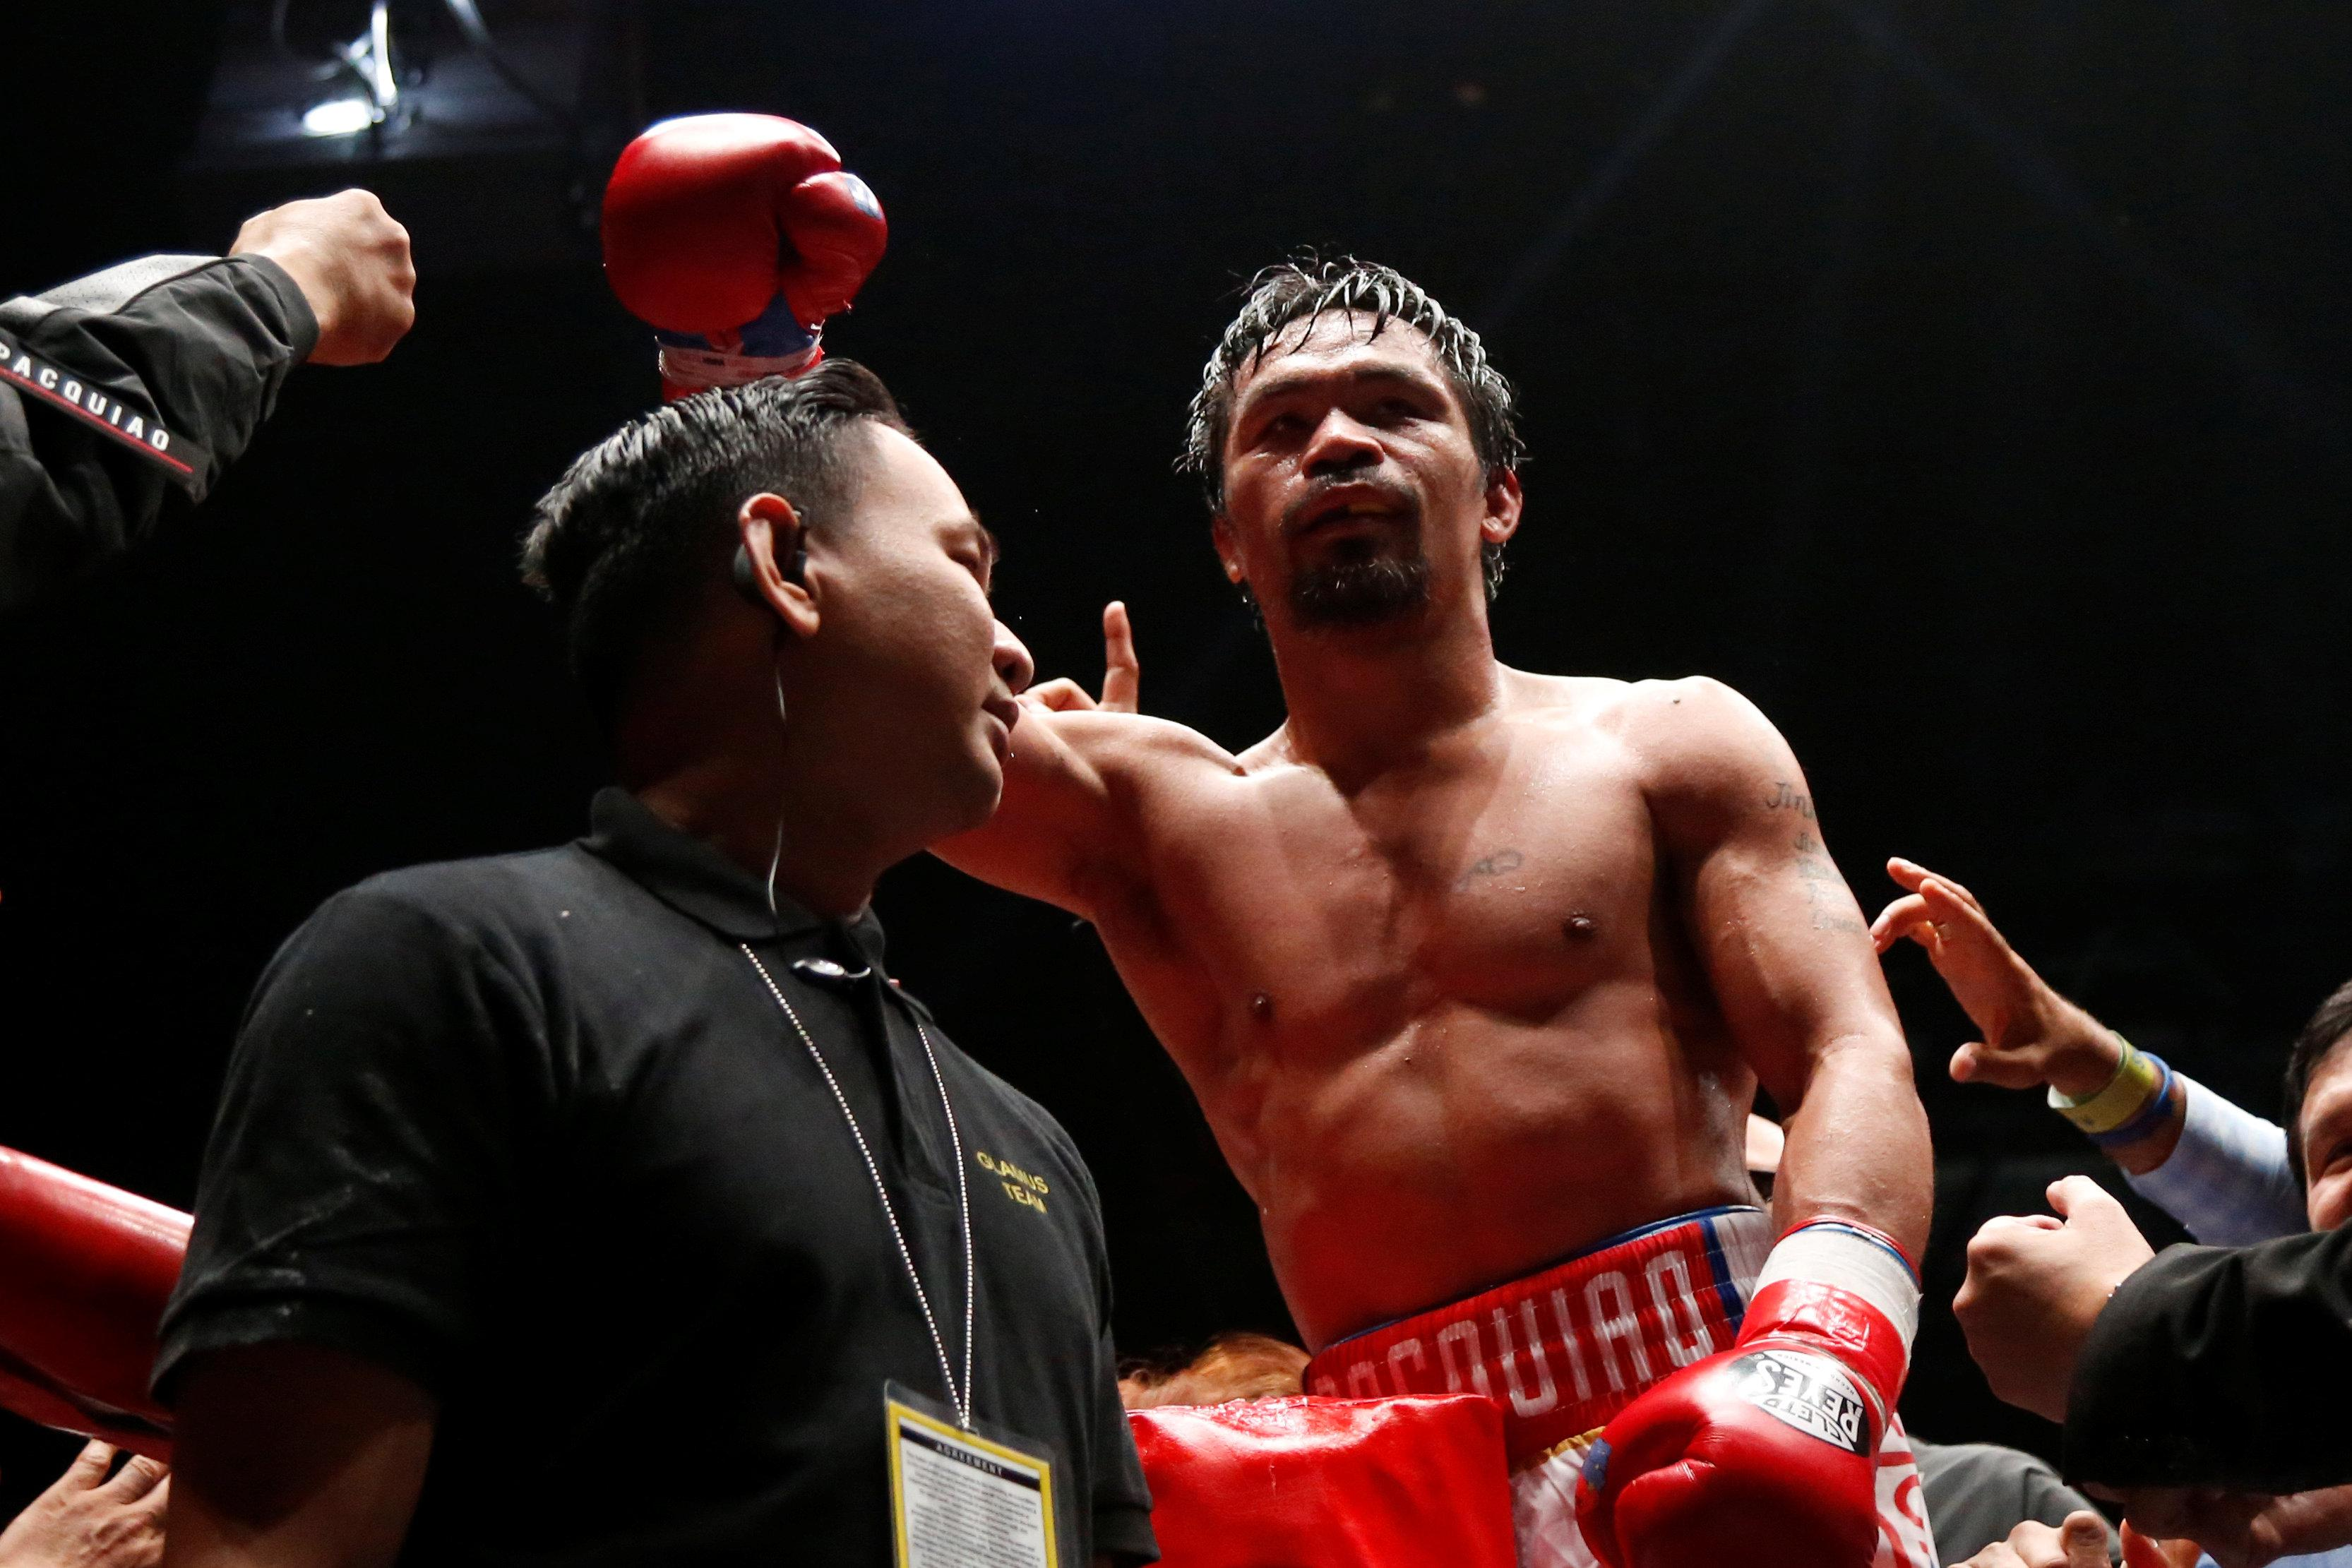 It's the 11th major world title the Filipino slugger has picked up in his glorious 23 year professional boxing career